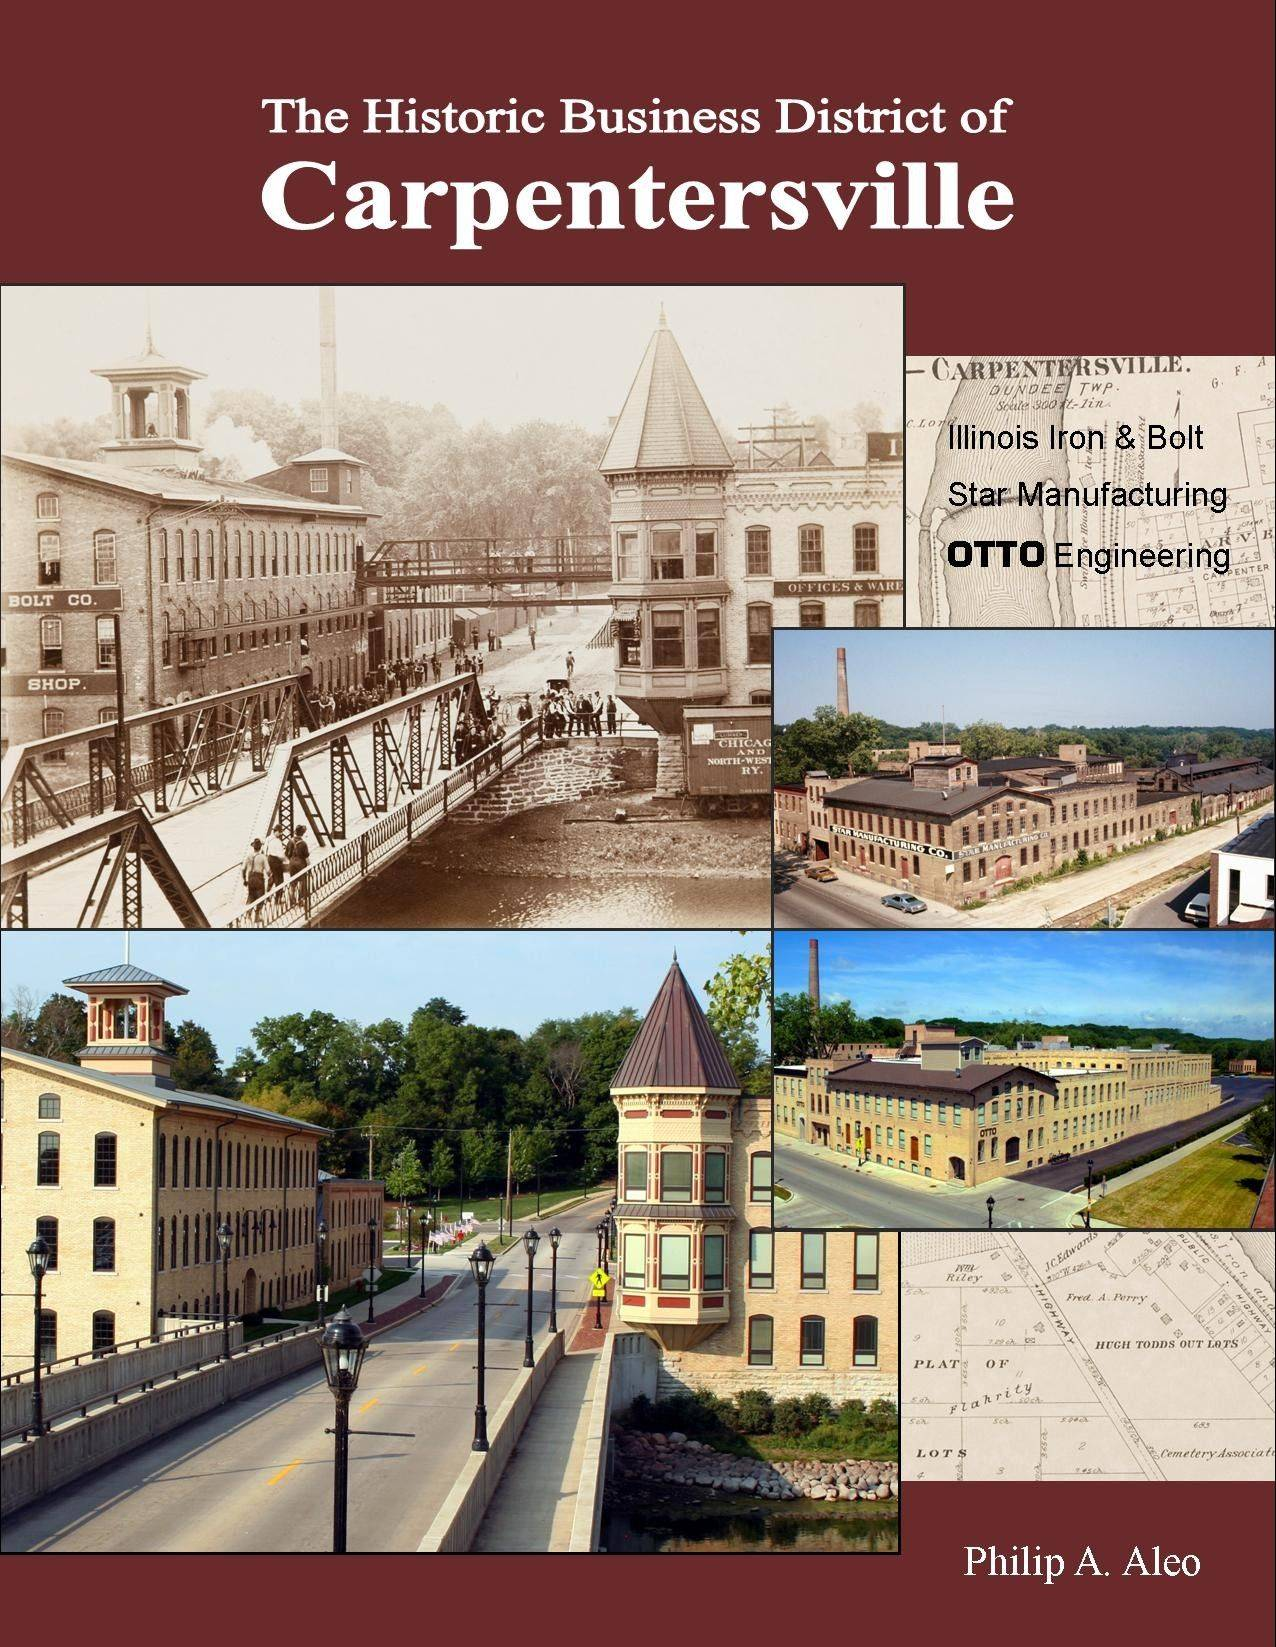 """The Historic Business District of Carpentersville"" is available on Amazon.com, at aleopublications.com and at several retail outlets in Elgin, Carpentersville and the Dundees."